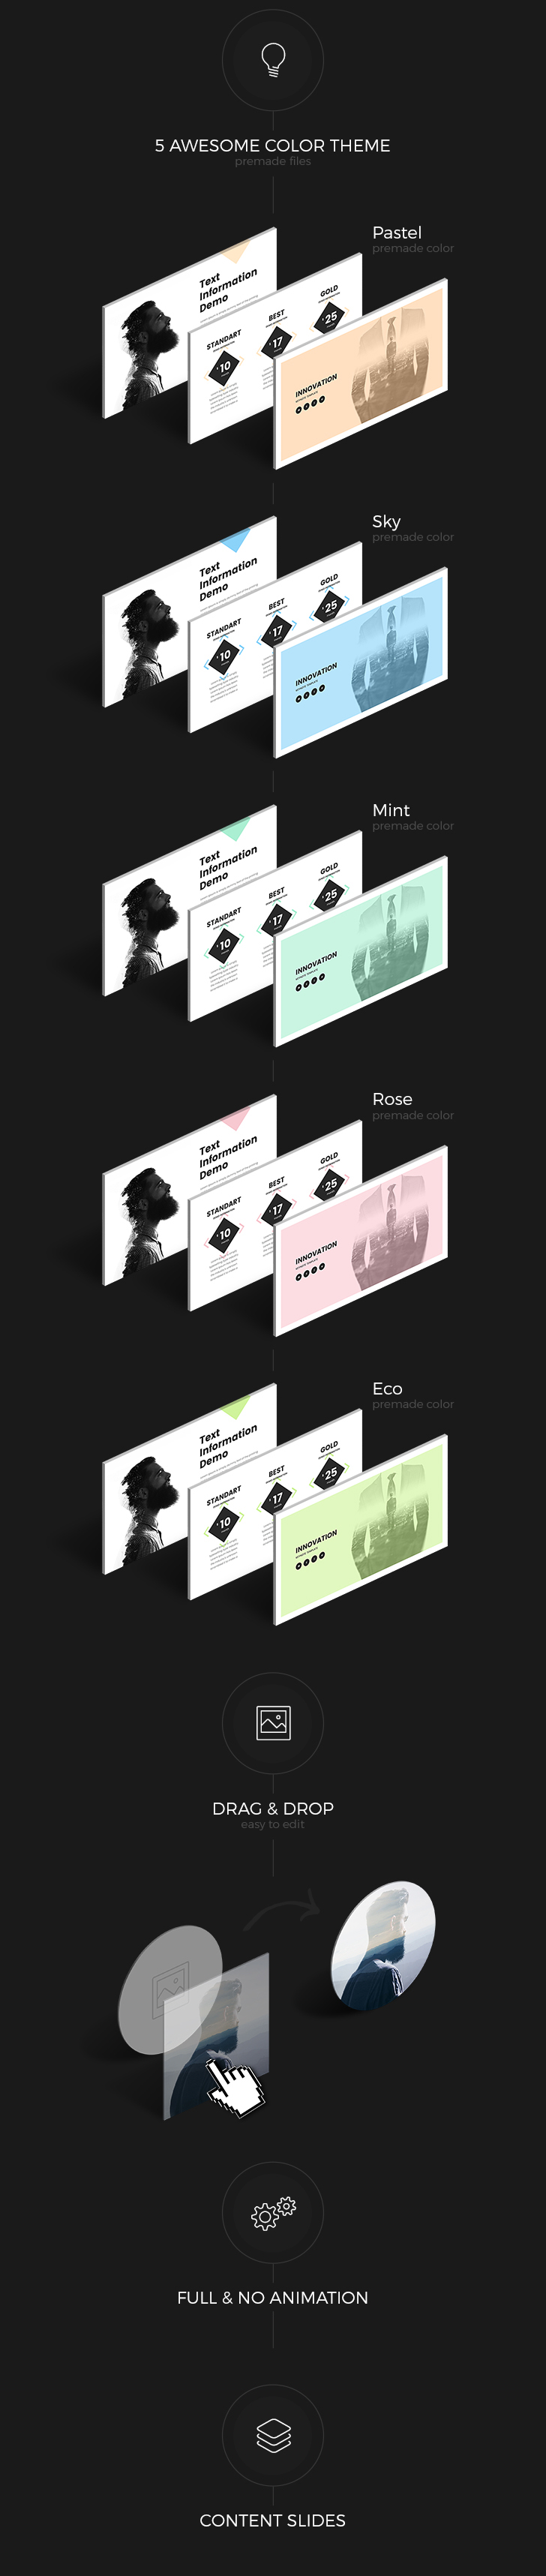 Innovation powerpoint template download now innovation powerpoint template toneelgroepblik Choice Image